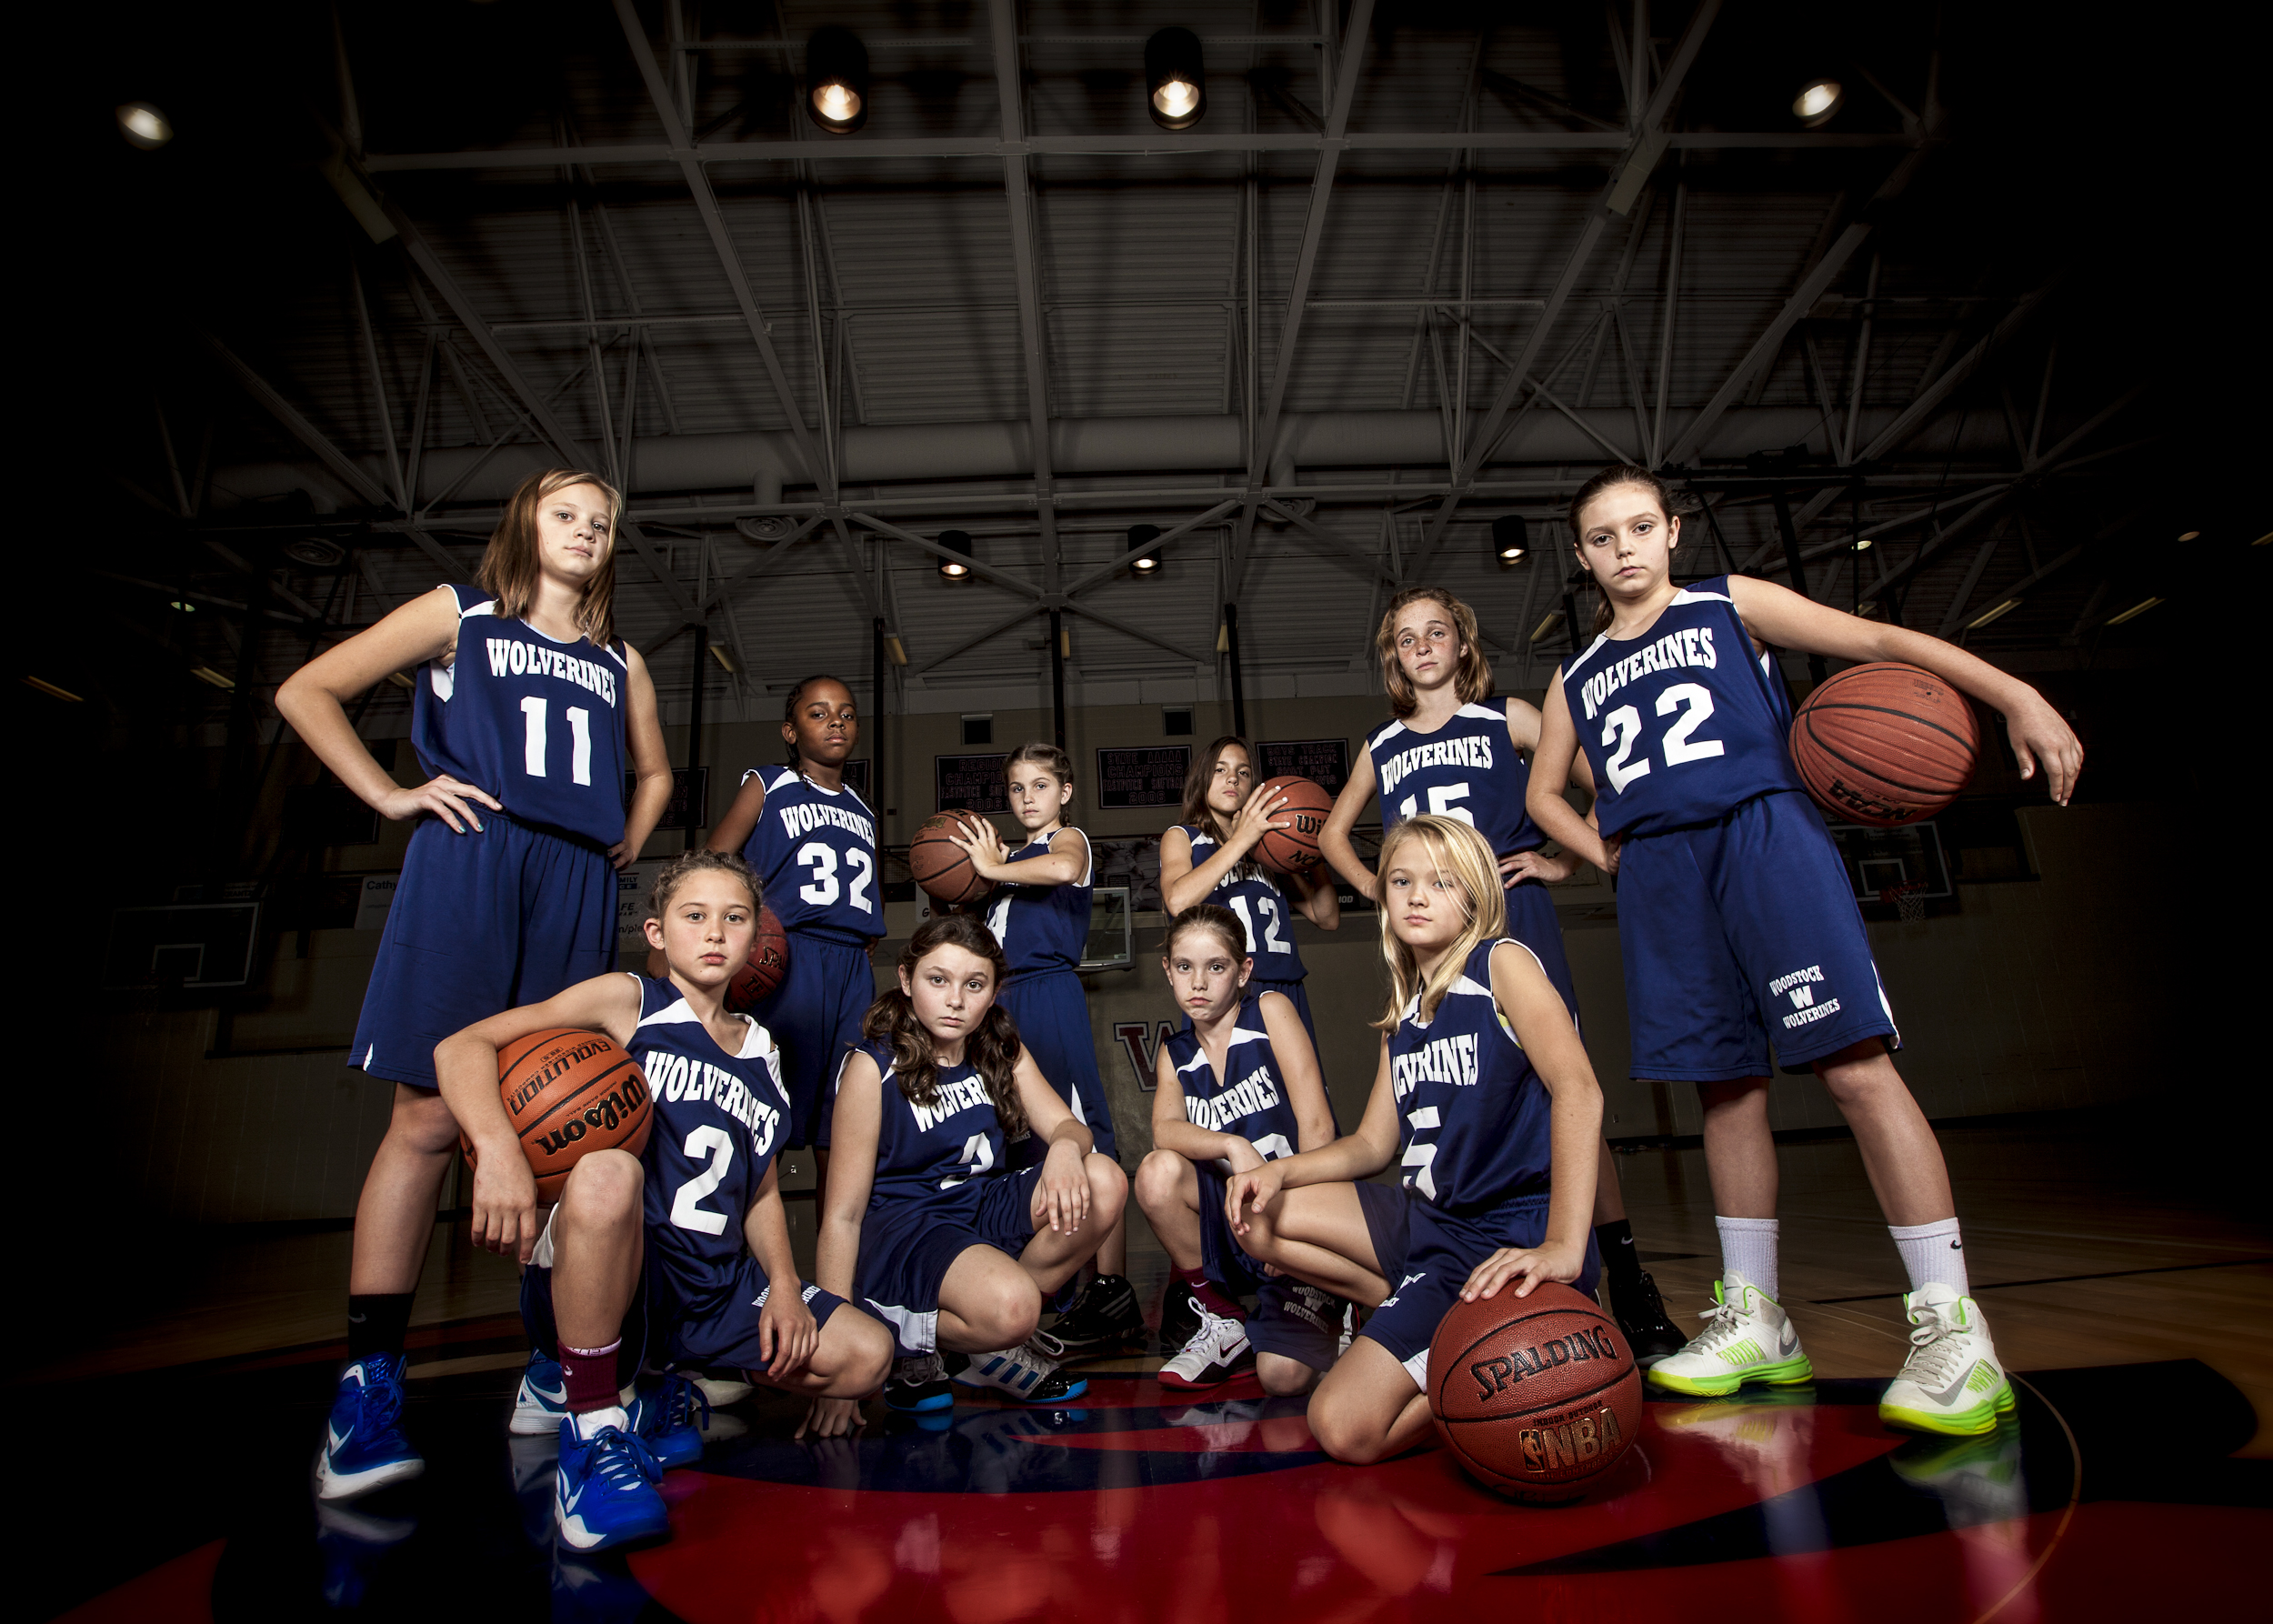 Woodstock Youth Basketball – smaX Photography